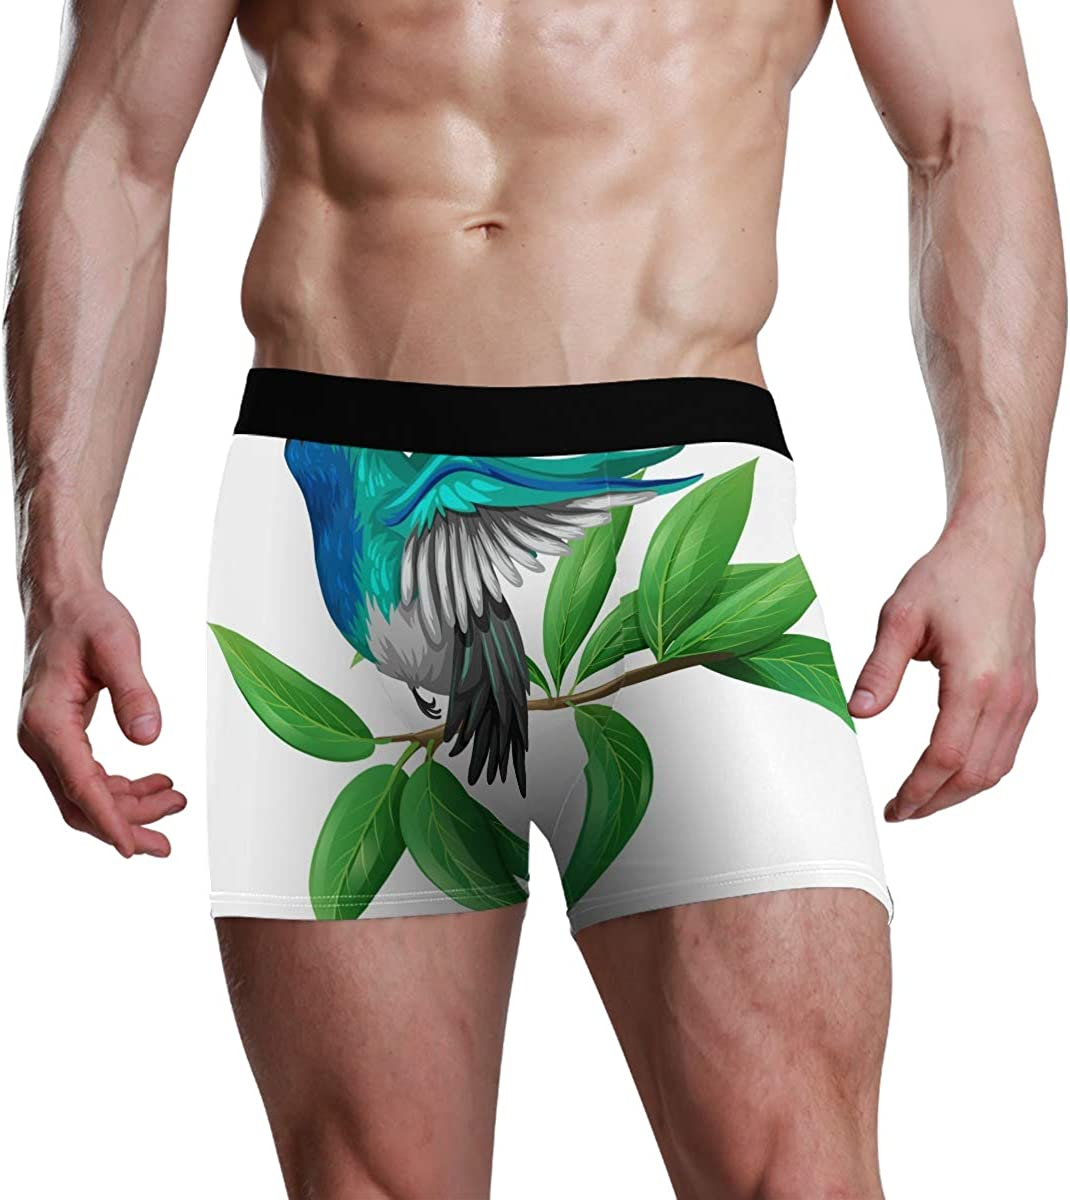 ATZUCL Mens Underwear Elastic Boxer Briefs Colourful Hummingbird Soft Breathable S for Men